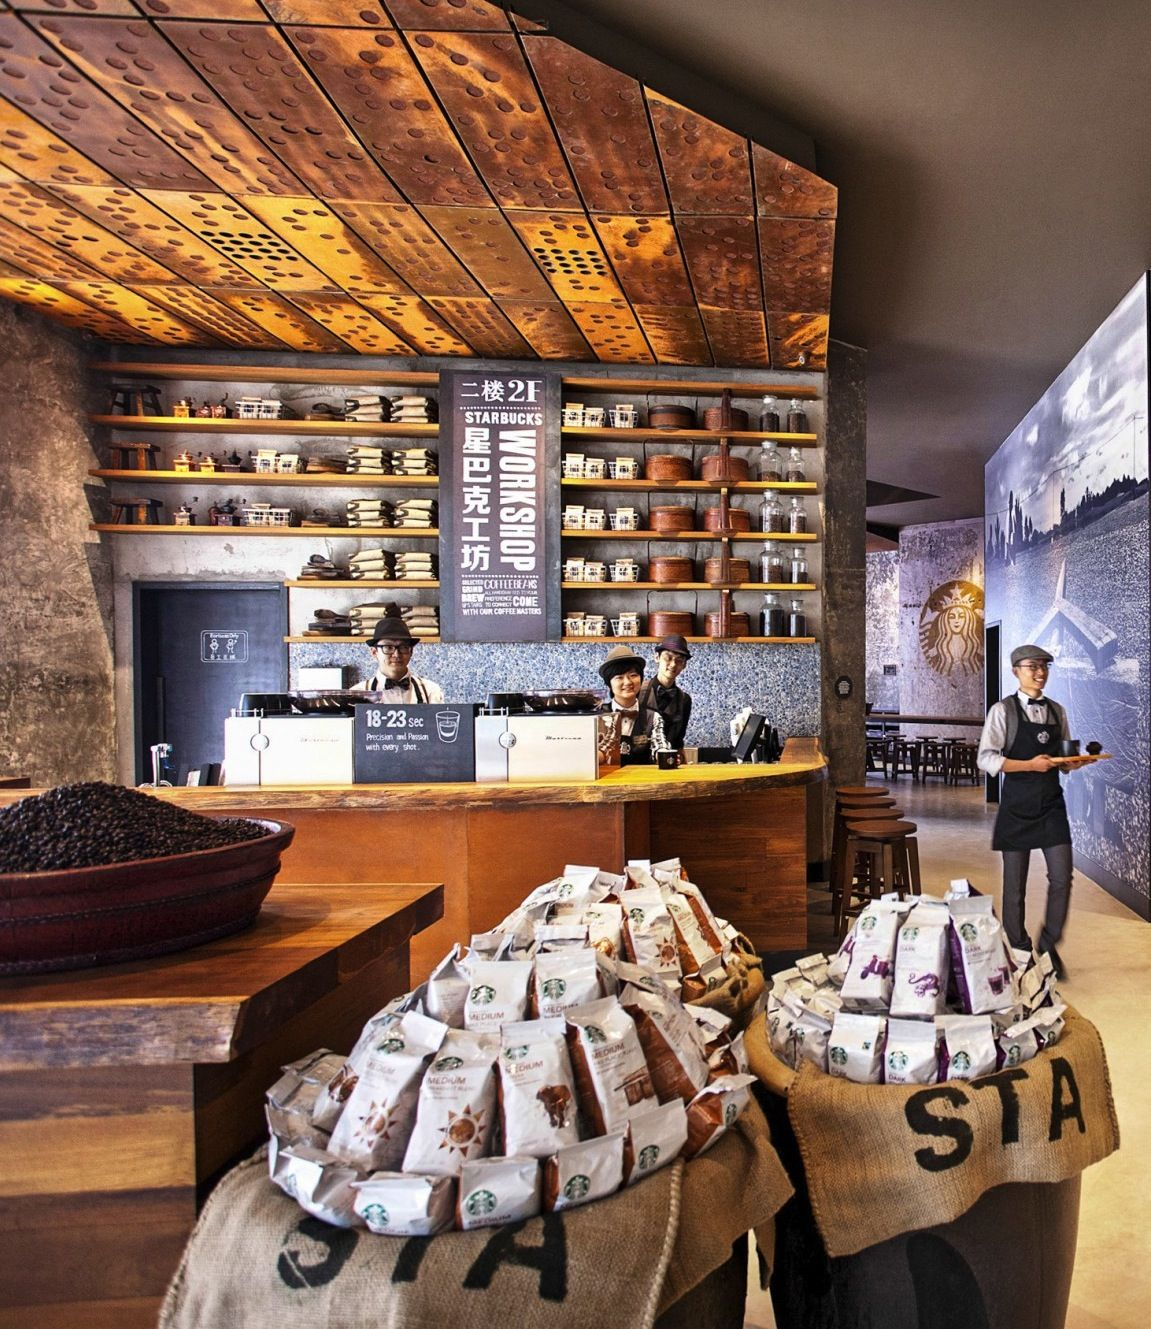 The Upper Bar In The Starbucks Store At Kerry Center In